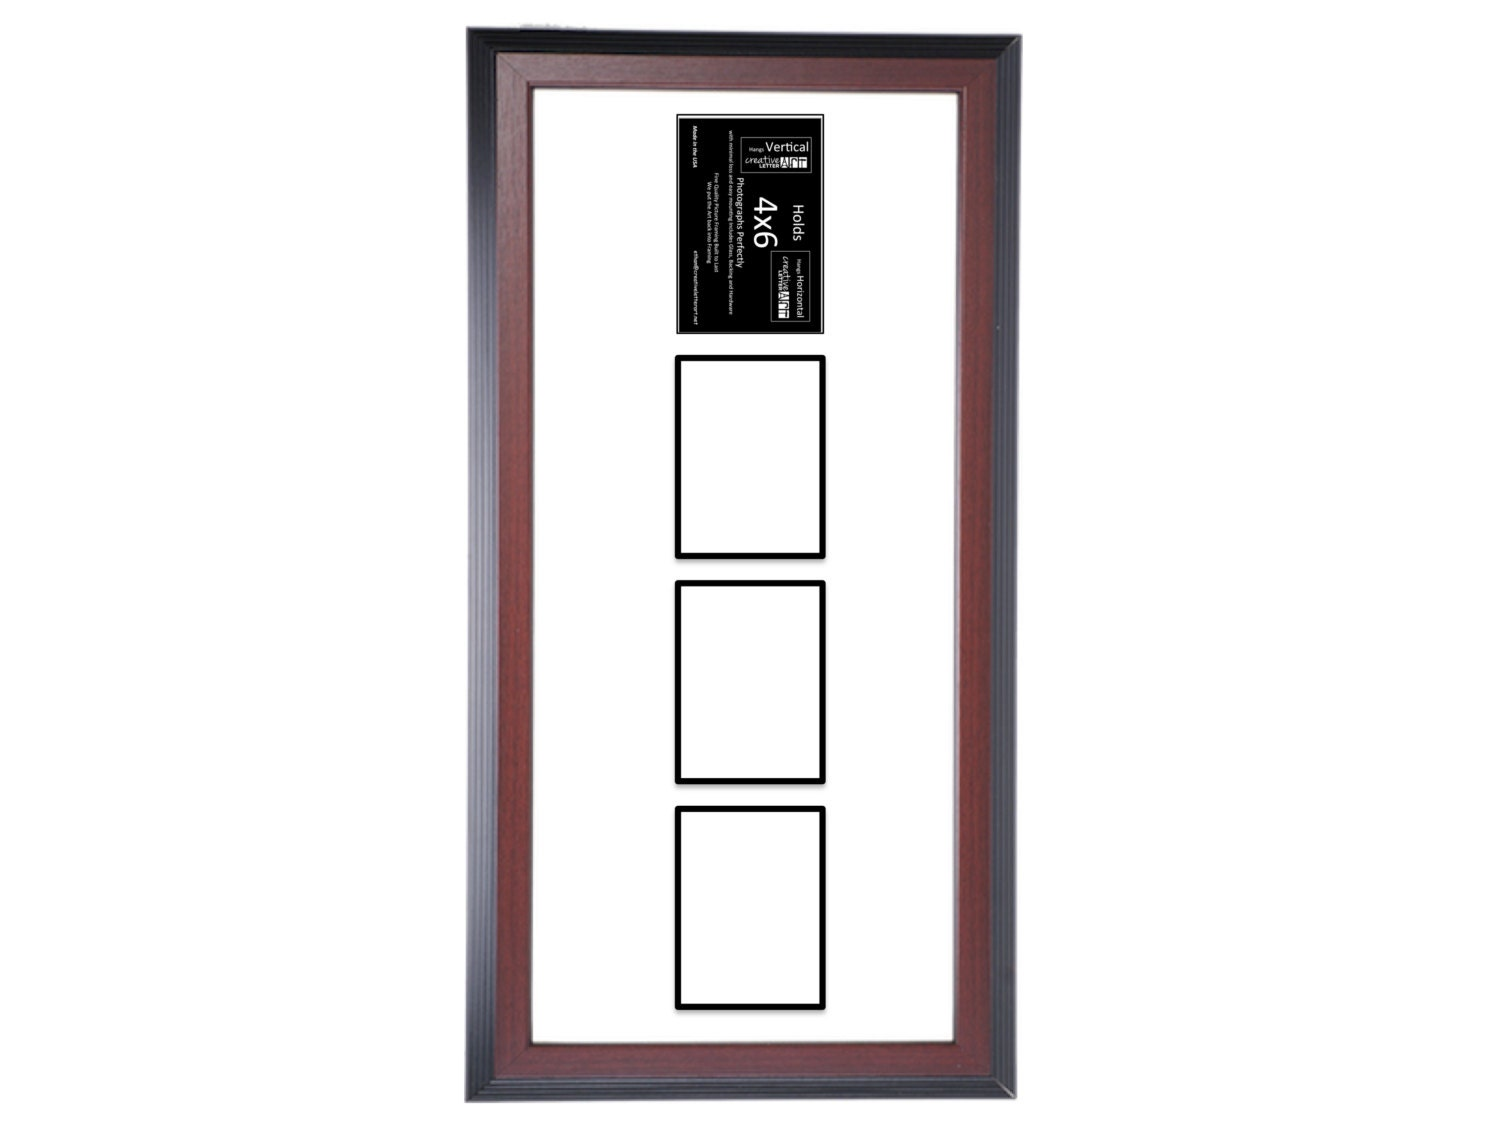 4x6 Vertical Multiple 2 3 4 5 6 7 Opening Mahogany Picture Frame ...